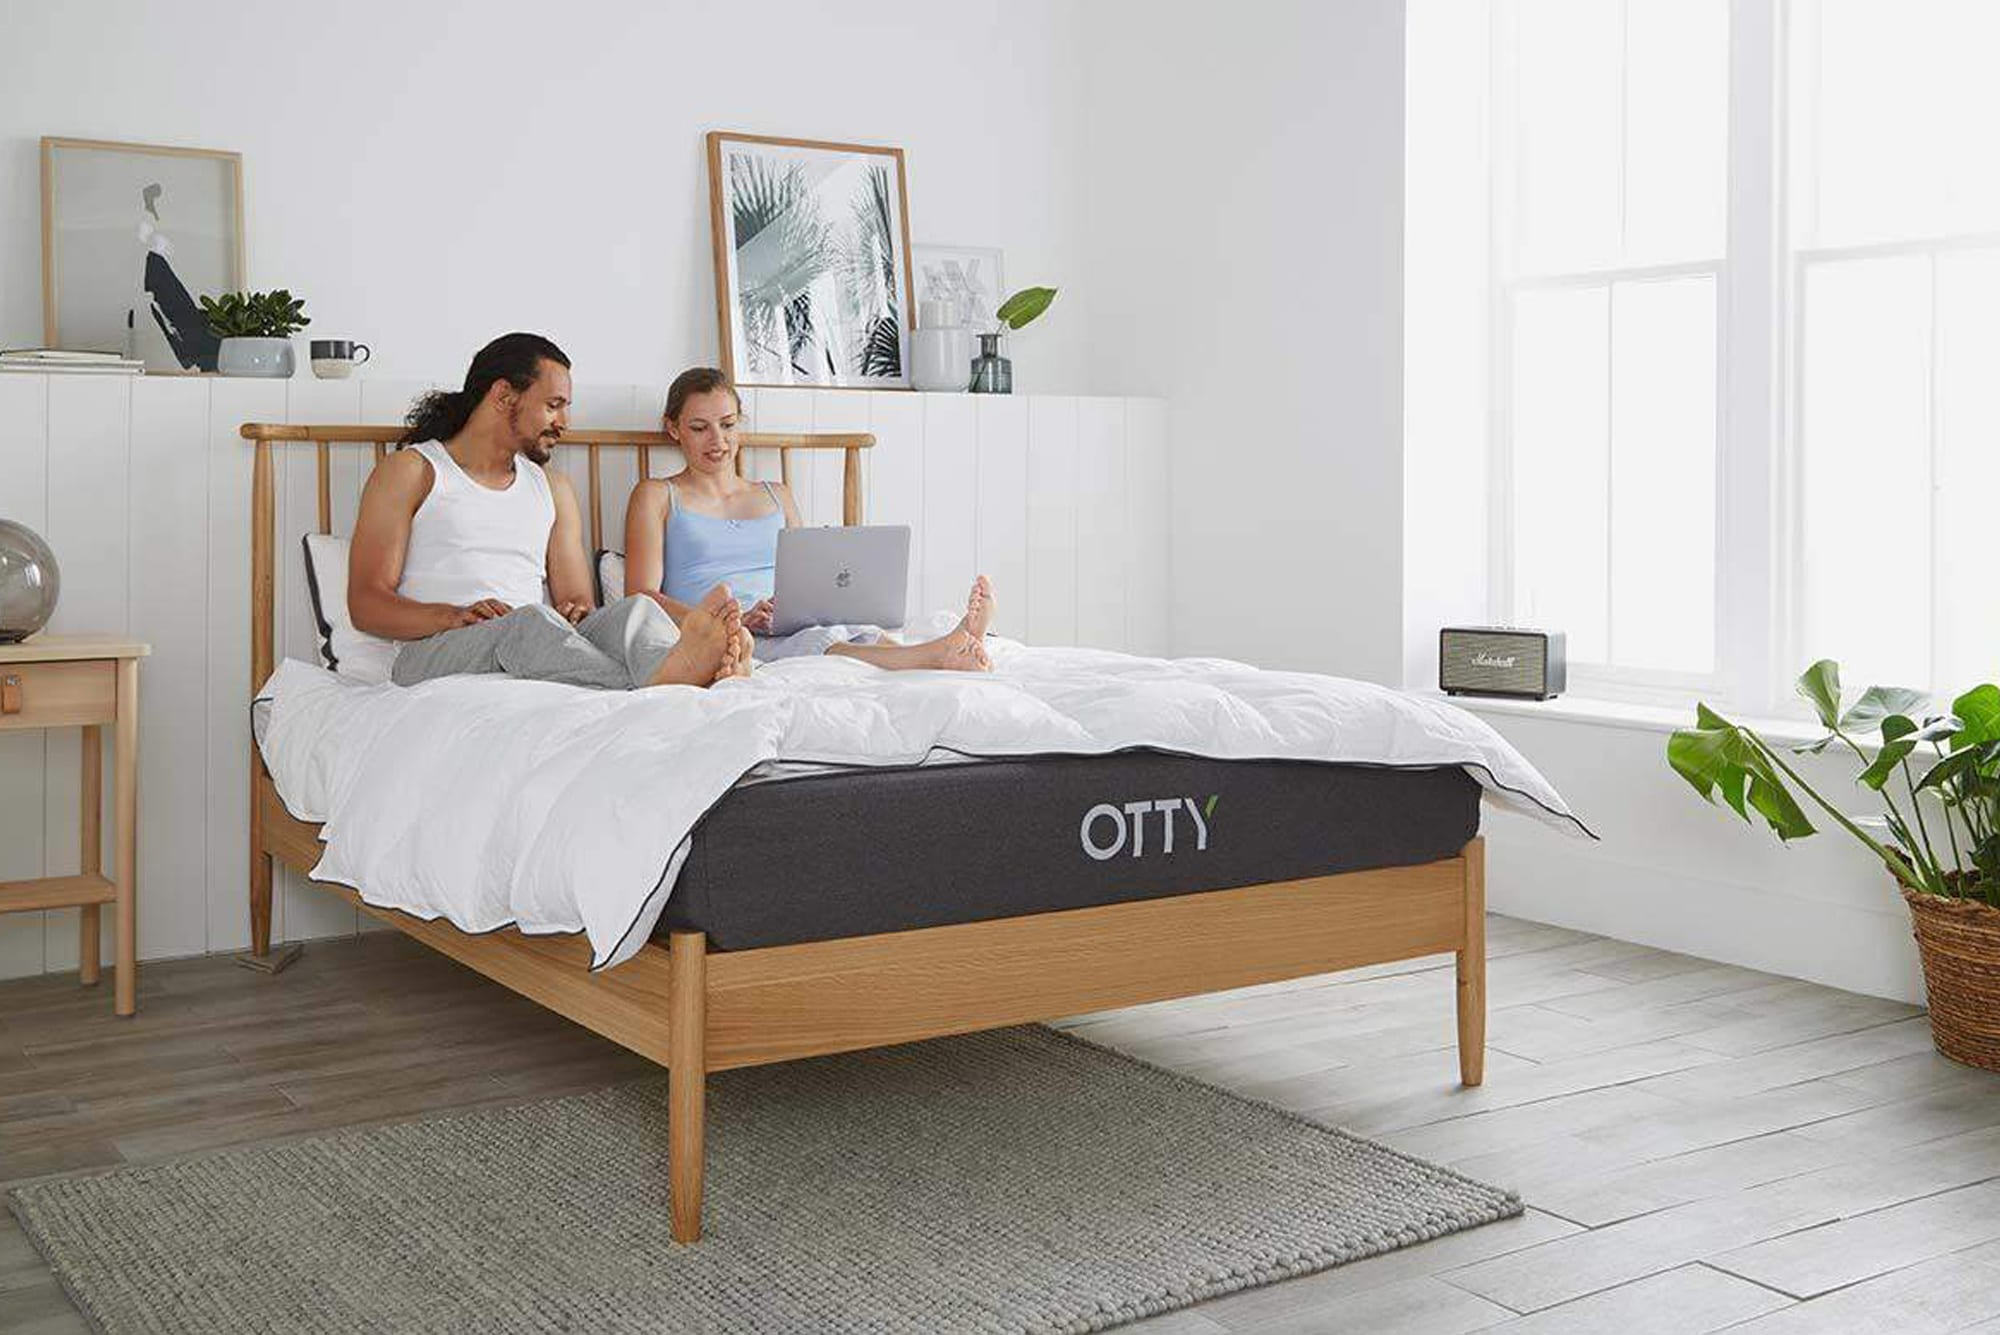 Otty Mattress Review 2019 Will It Help You Sleep Soundly